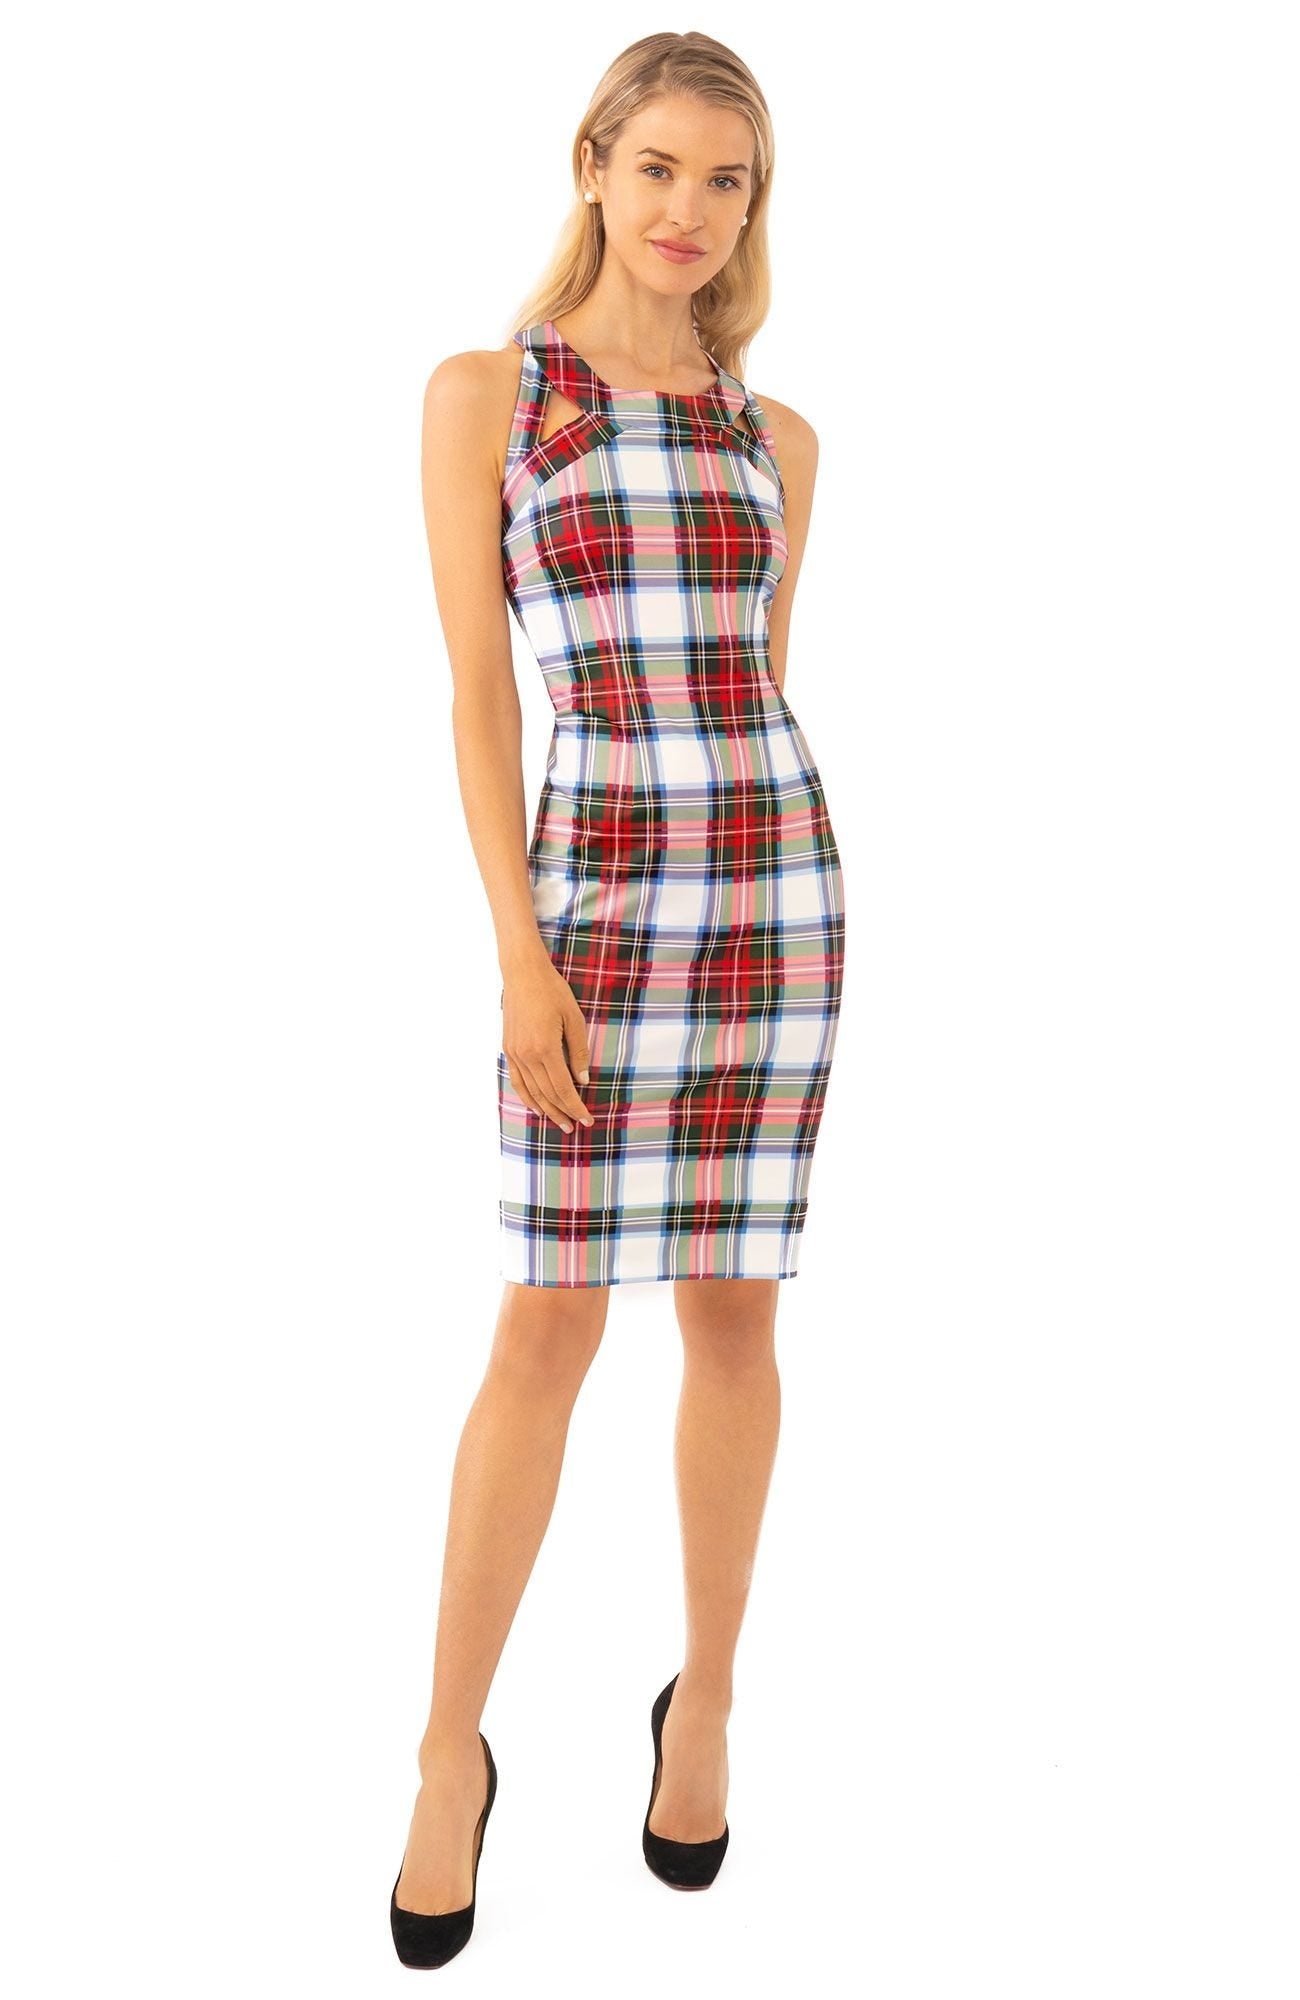 Gretchen Scott Isosceles Jersey Dress - Duke Of York - White/Multi